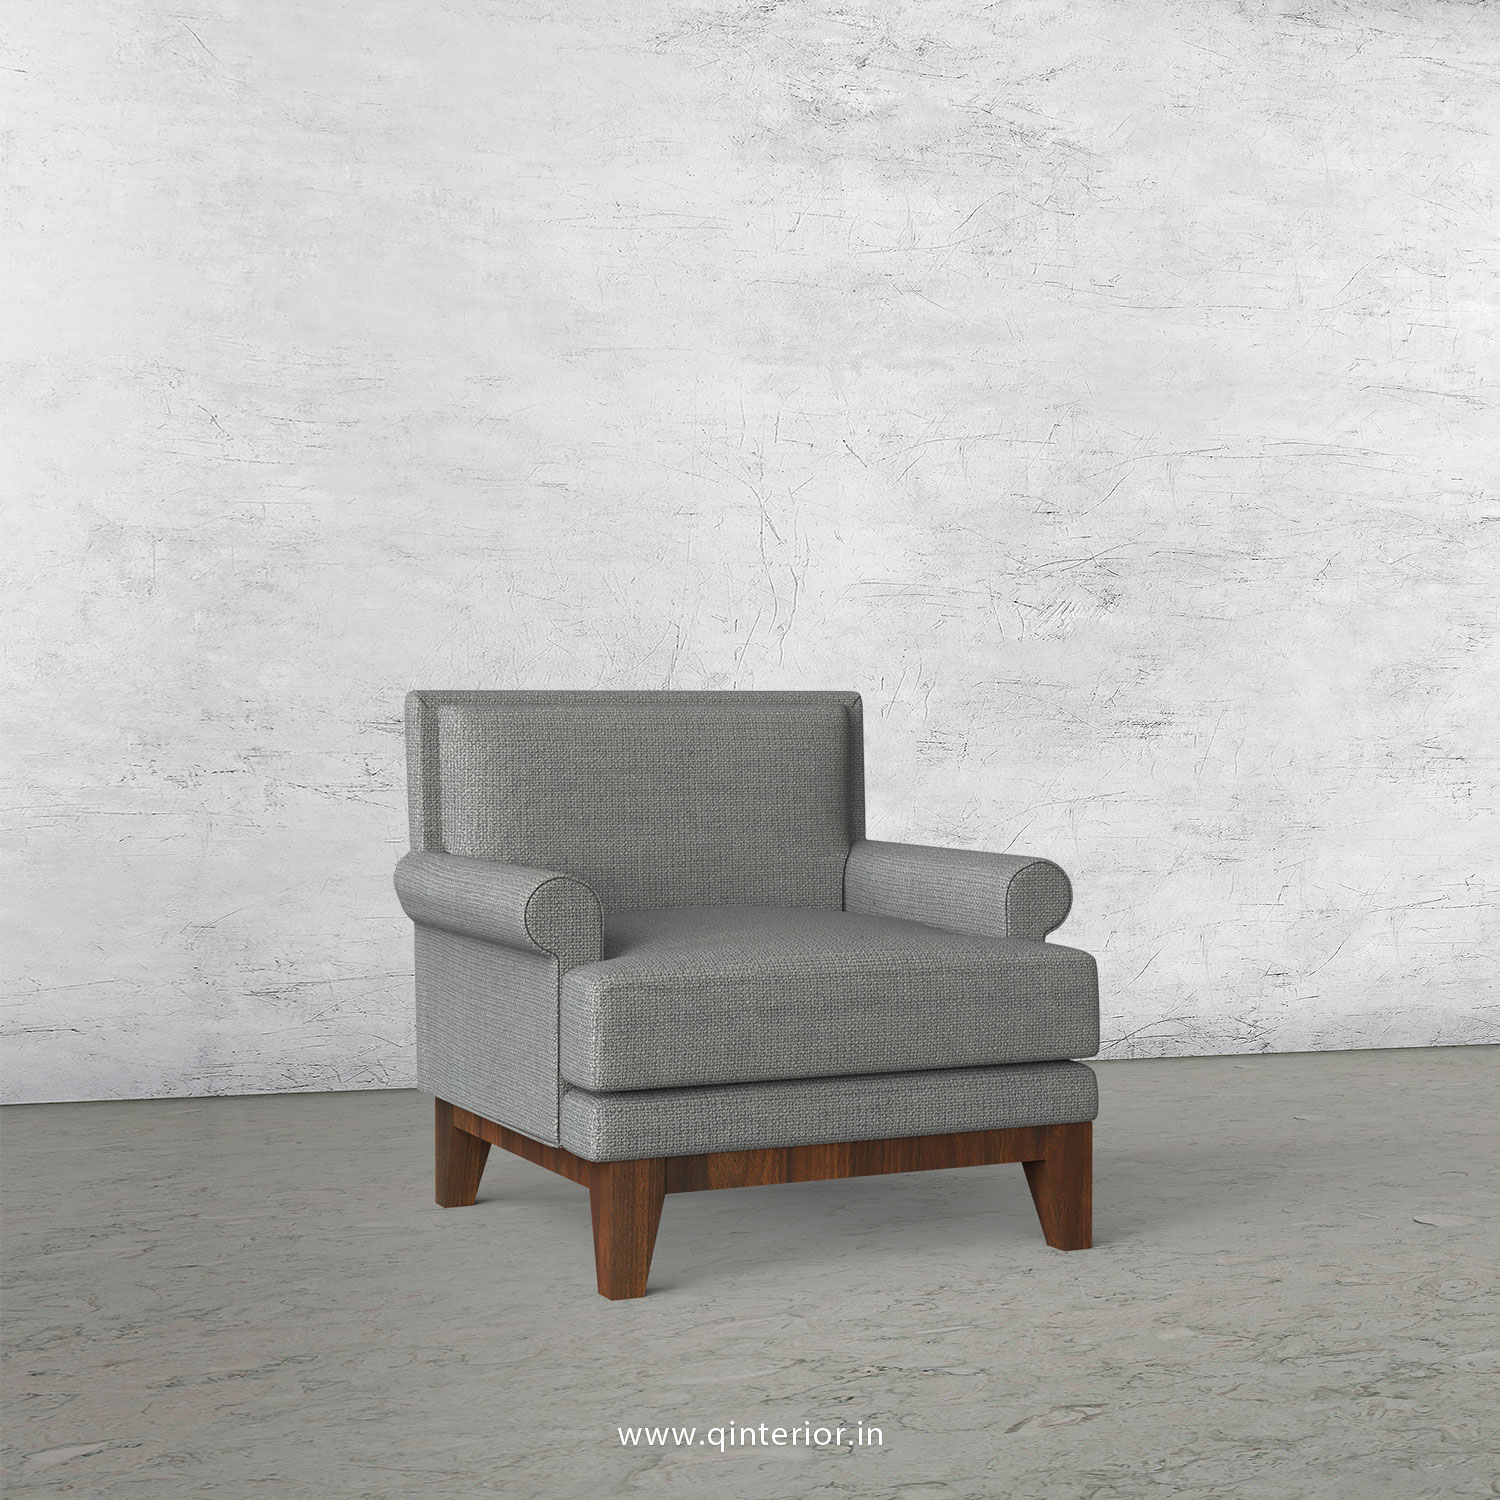 Aviana 1 Seater Sofa in Marvello - SFA001 MV03